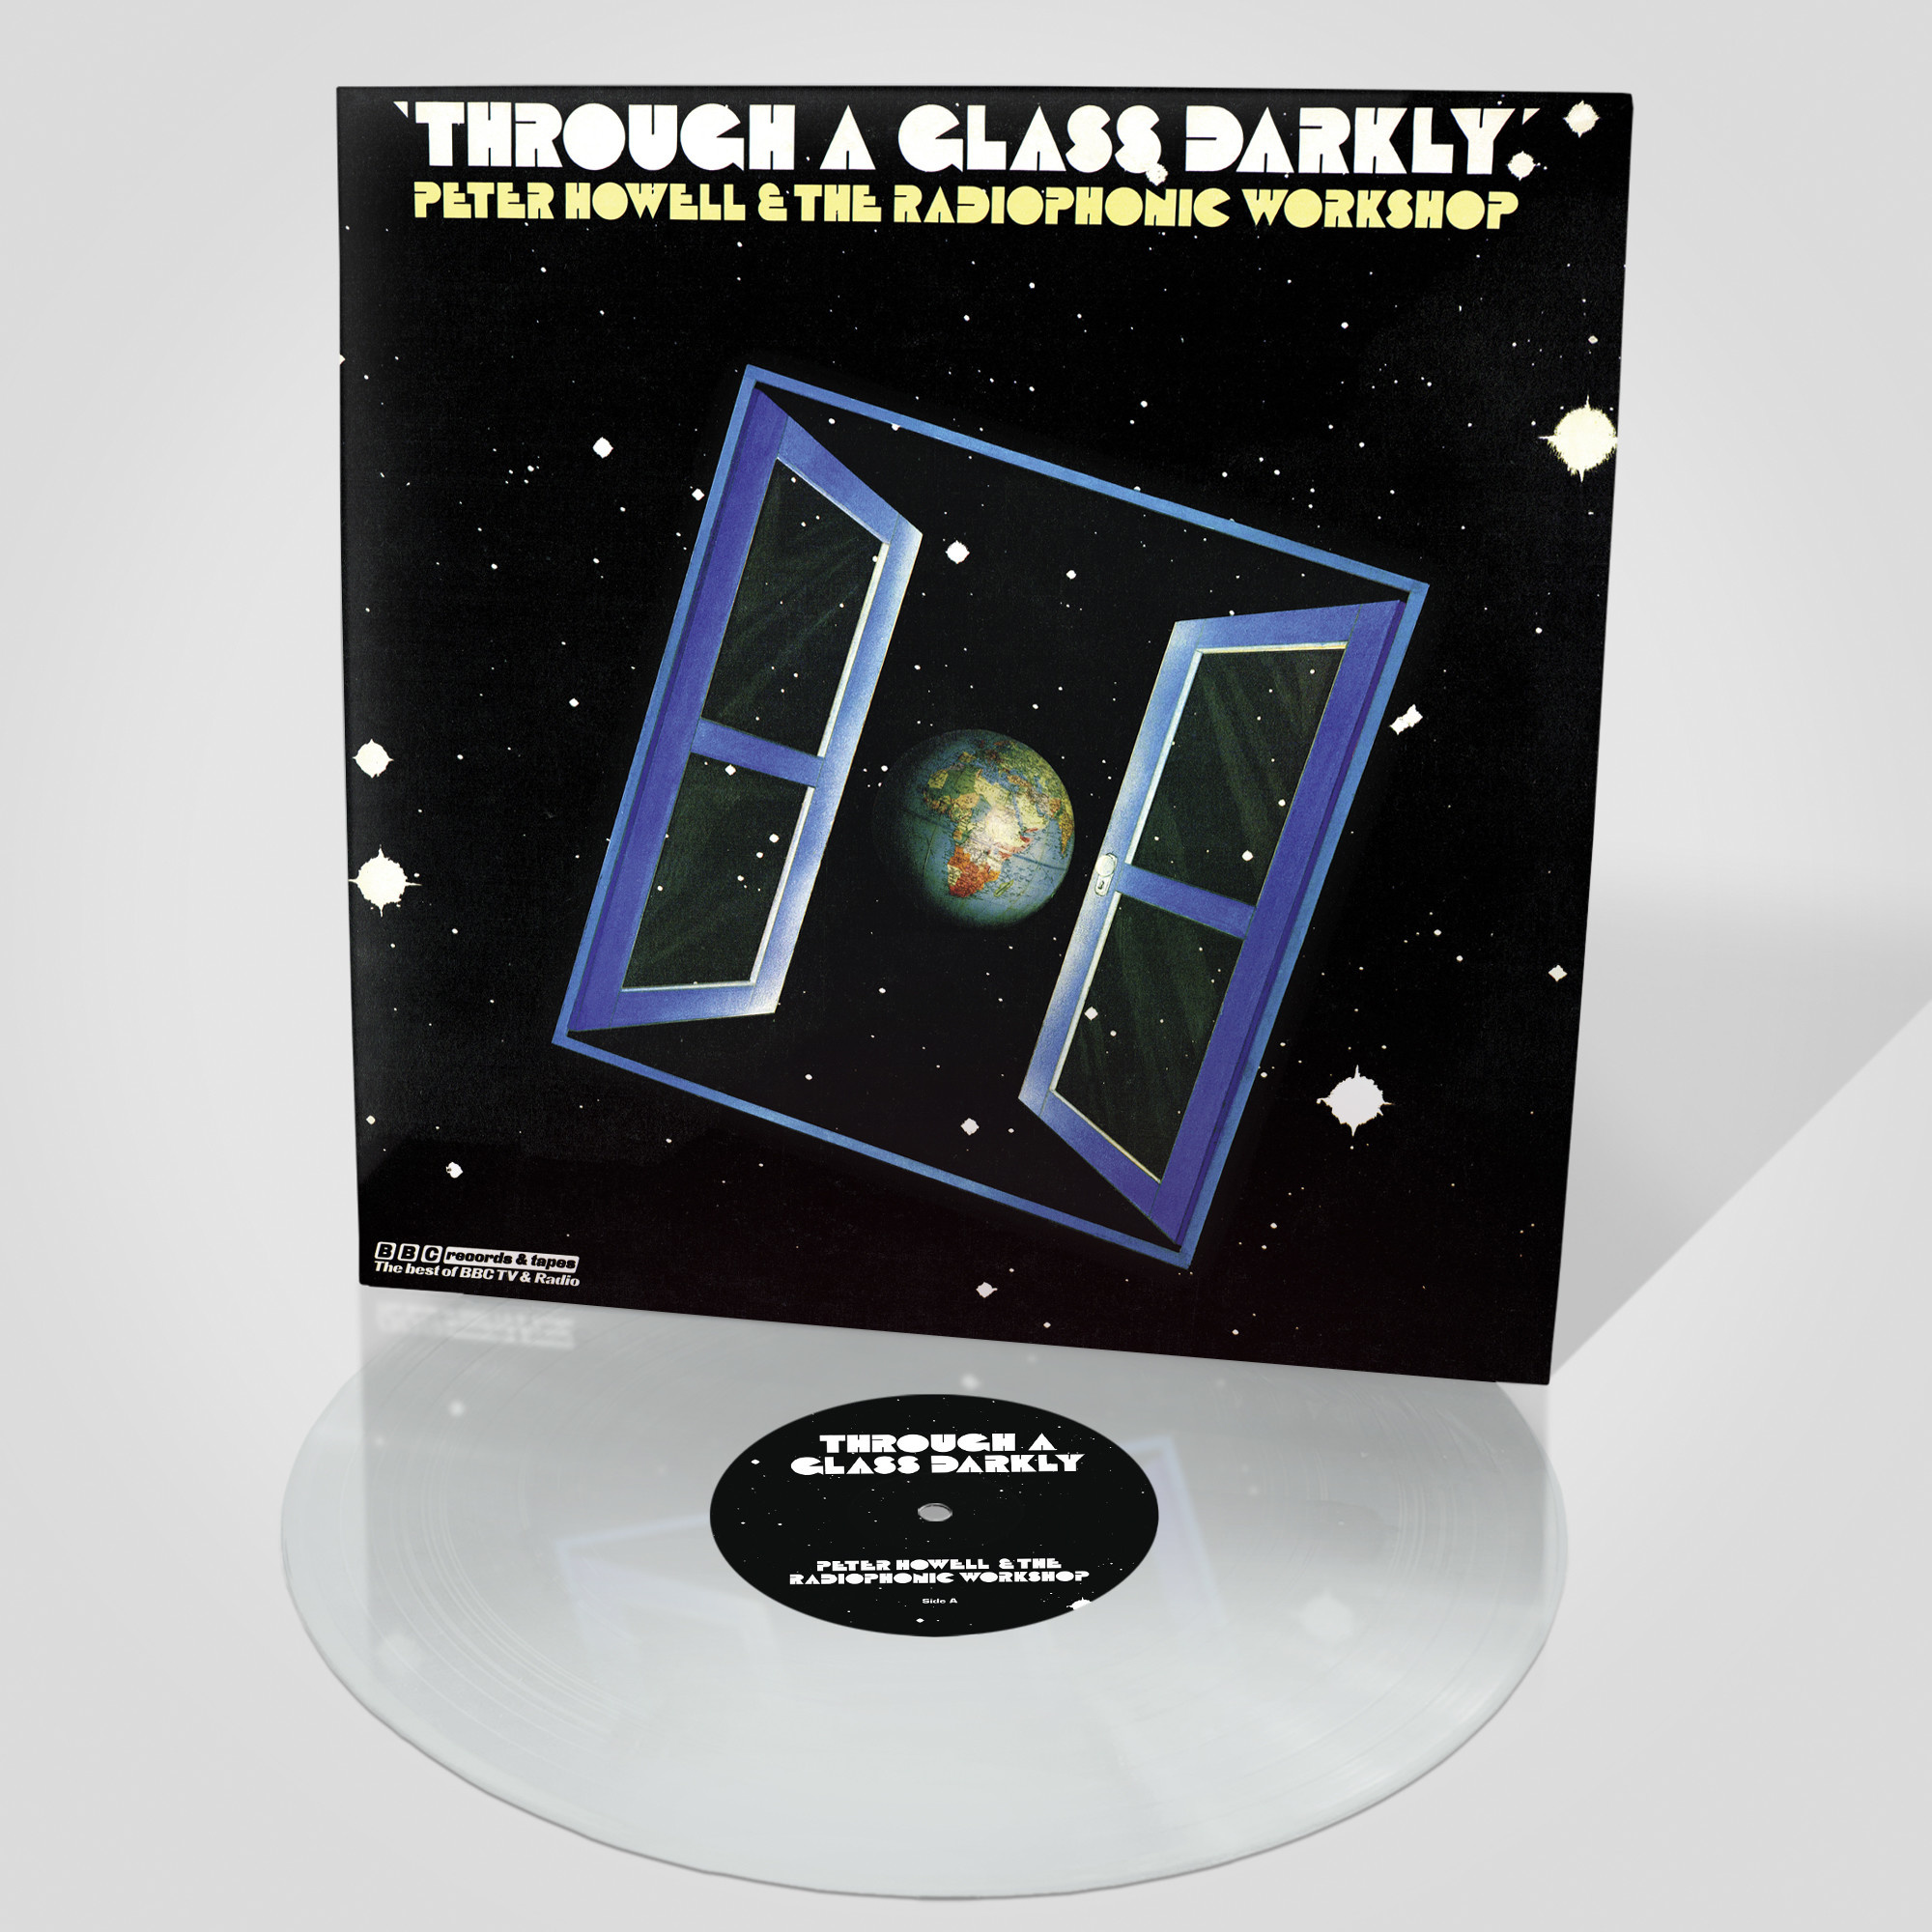 Silva Screen Peter Howell & The Radiophonic Workshop - Through A Glass Darkly (Coloured Vinyl)